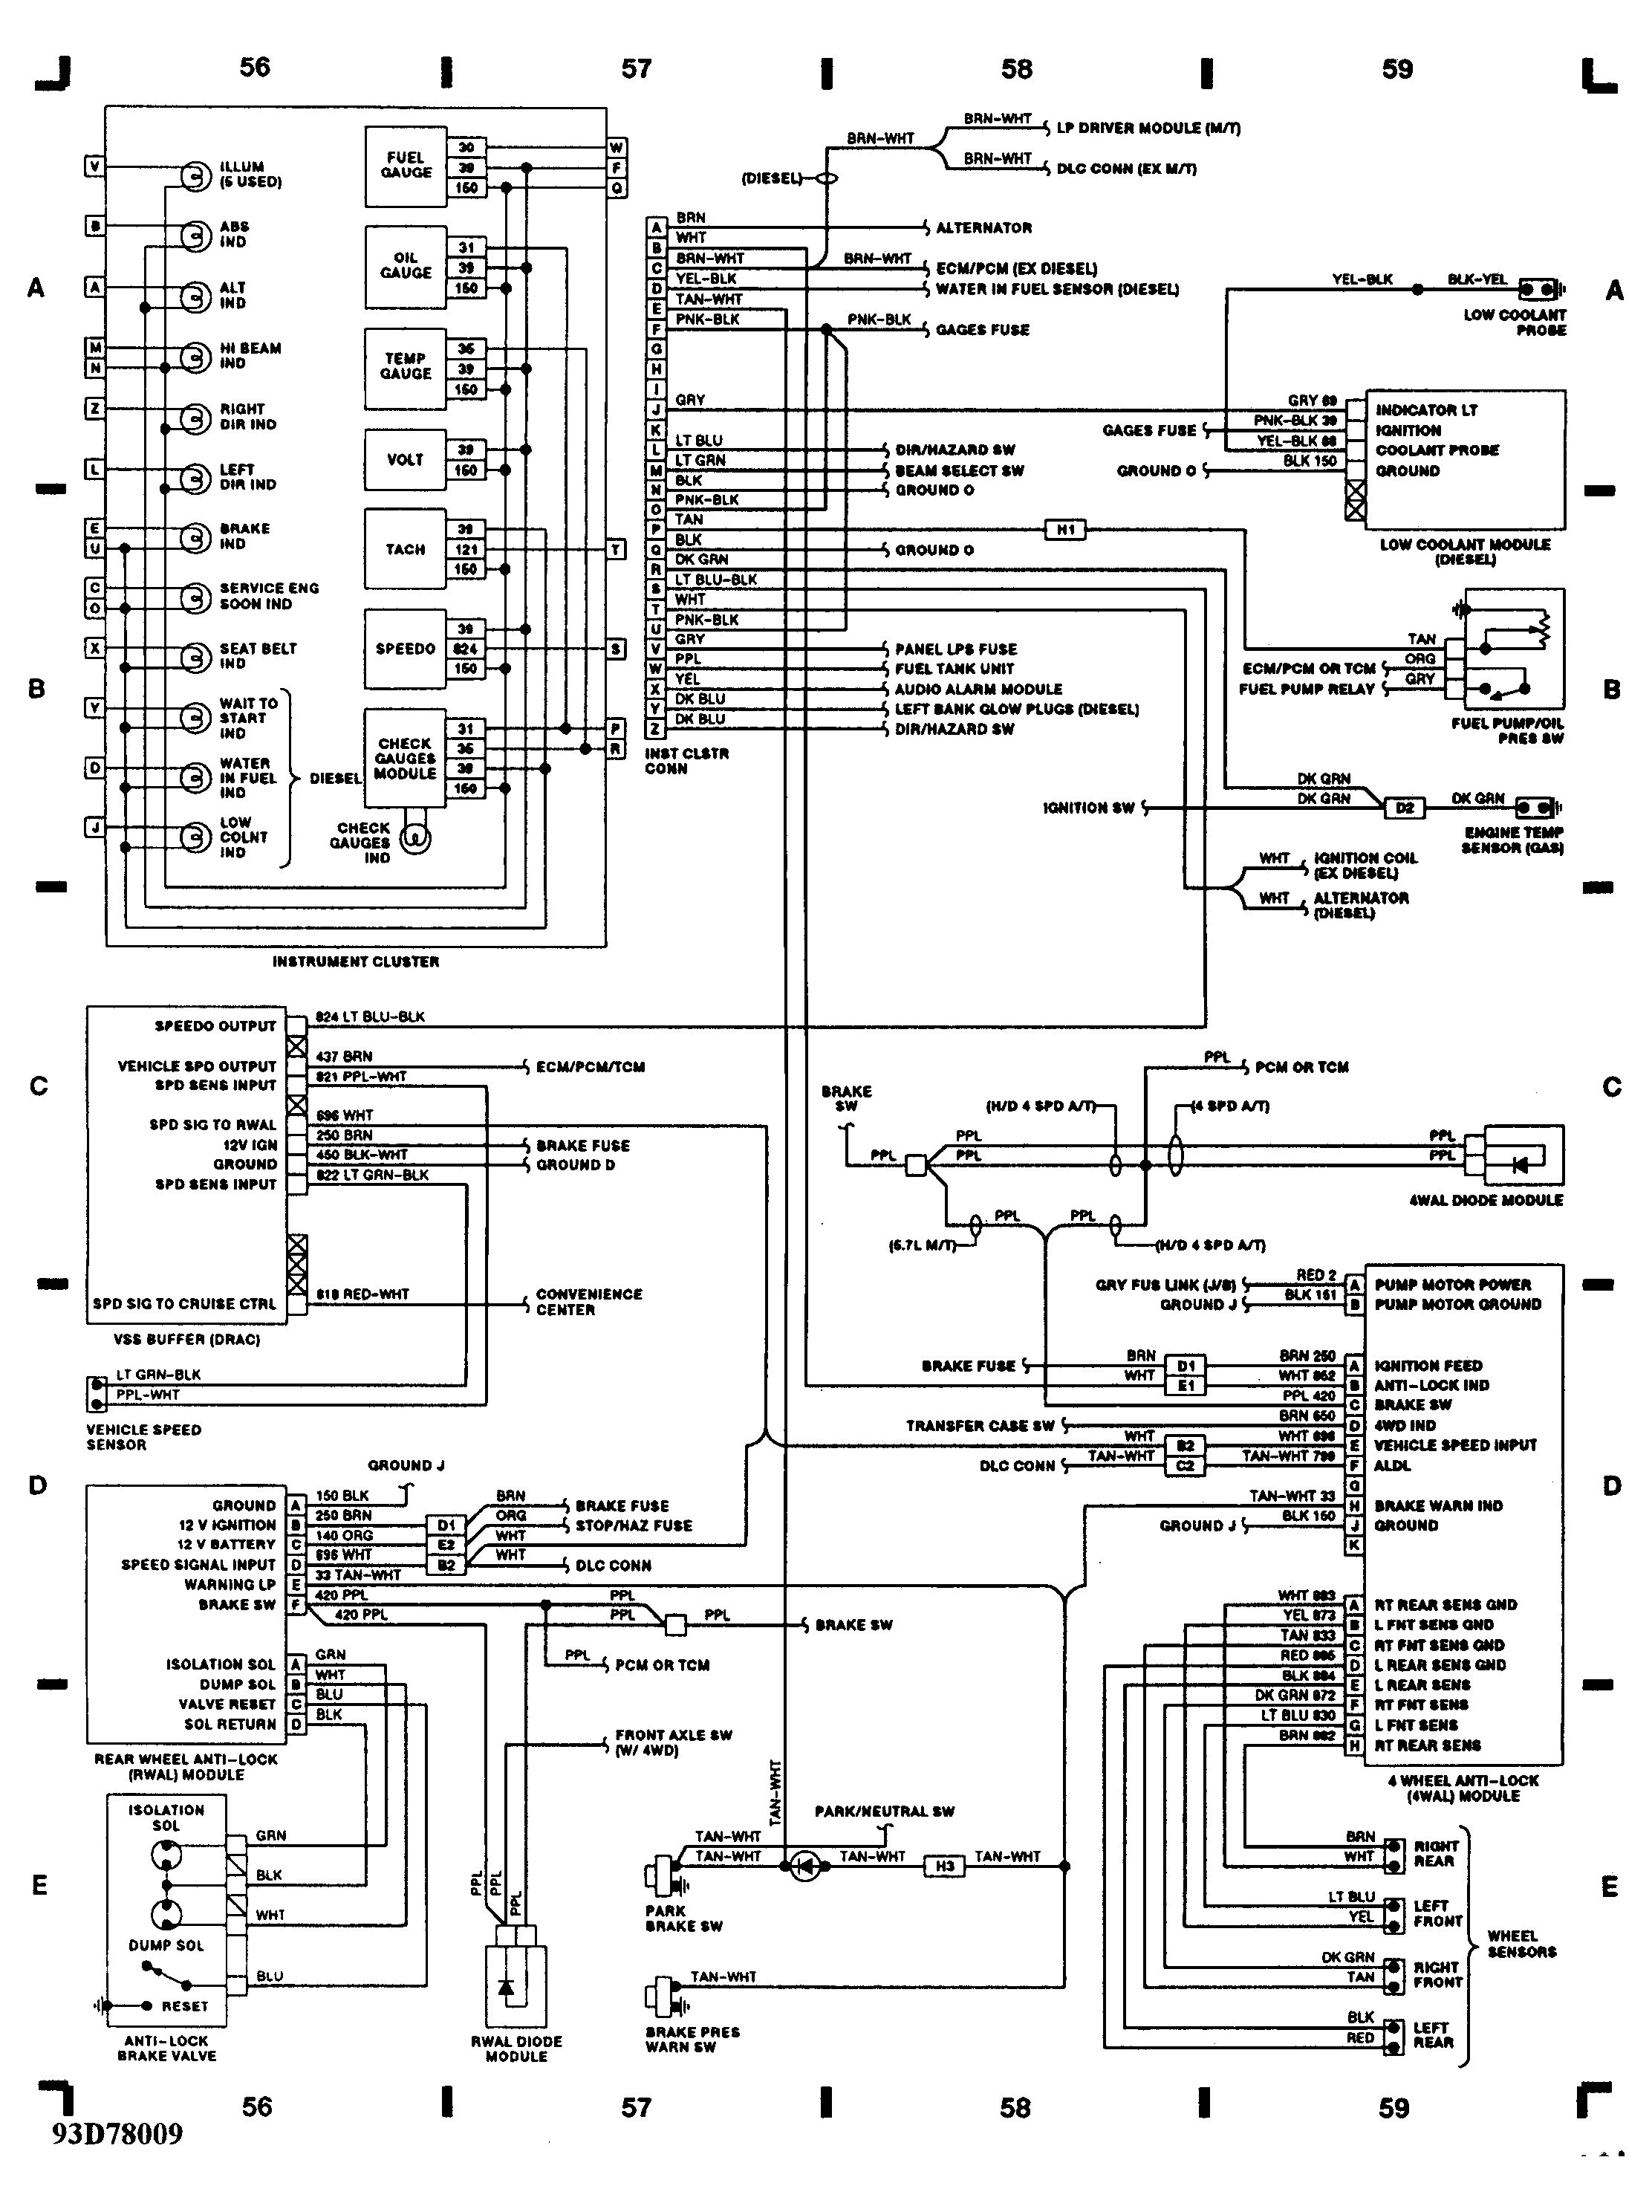 3 1l olds engine diagram data wiring diagrams rh 6 deir treatymonitoring de stroke engine diagram